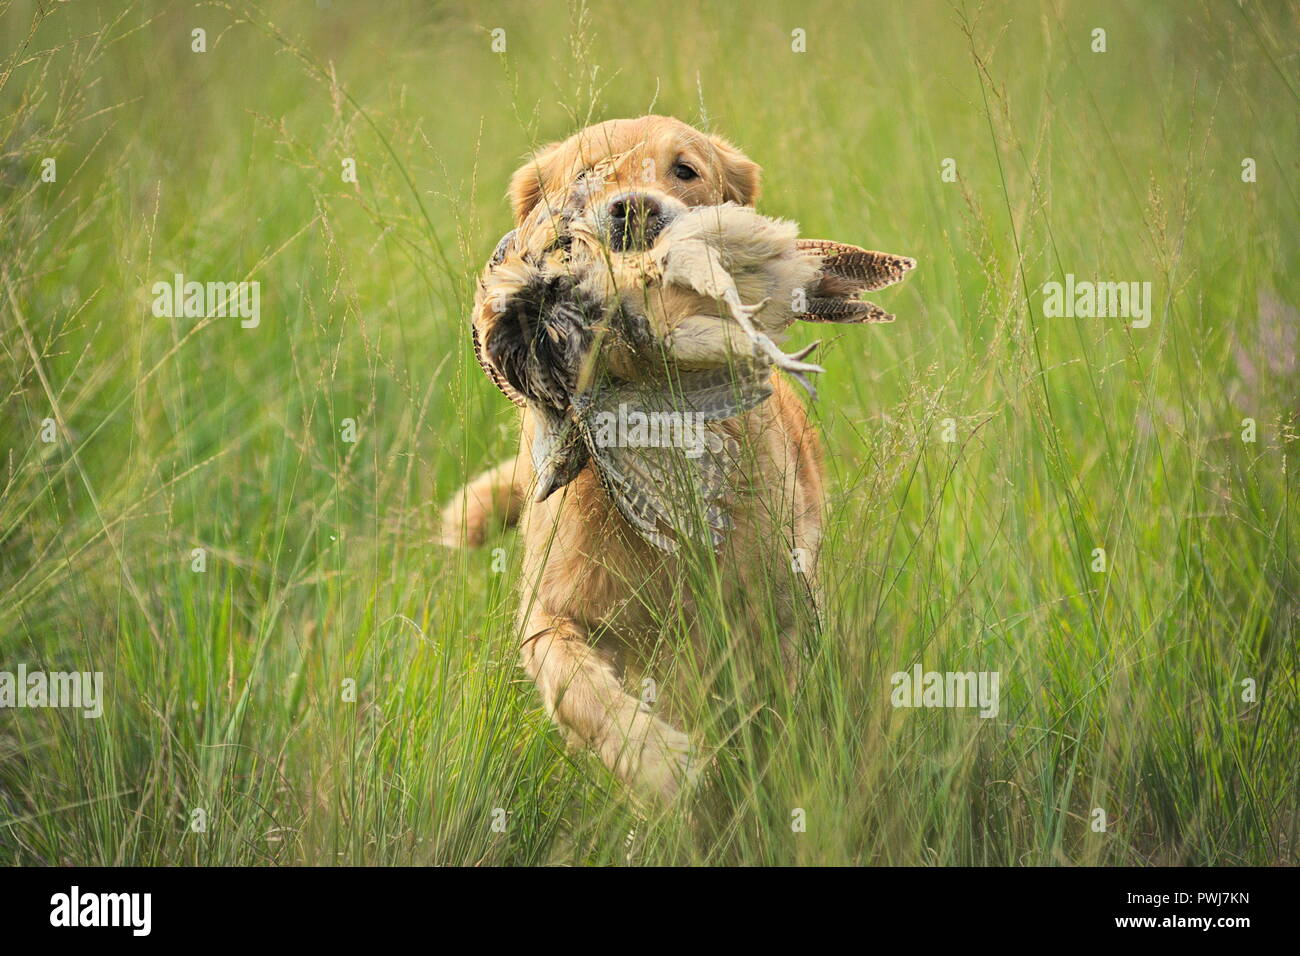 Golden retriever working, retrieving a pheasant to his owner - Stock Image